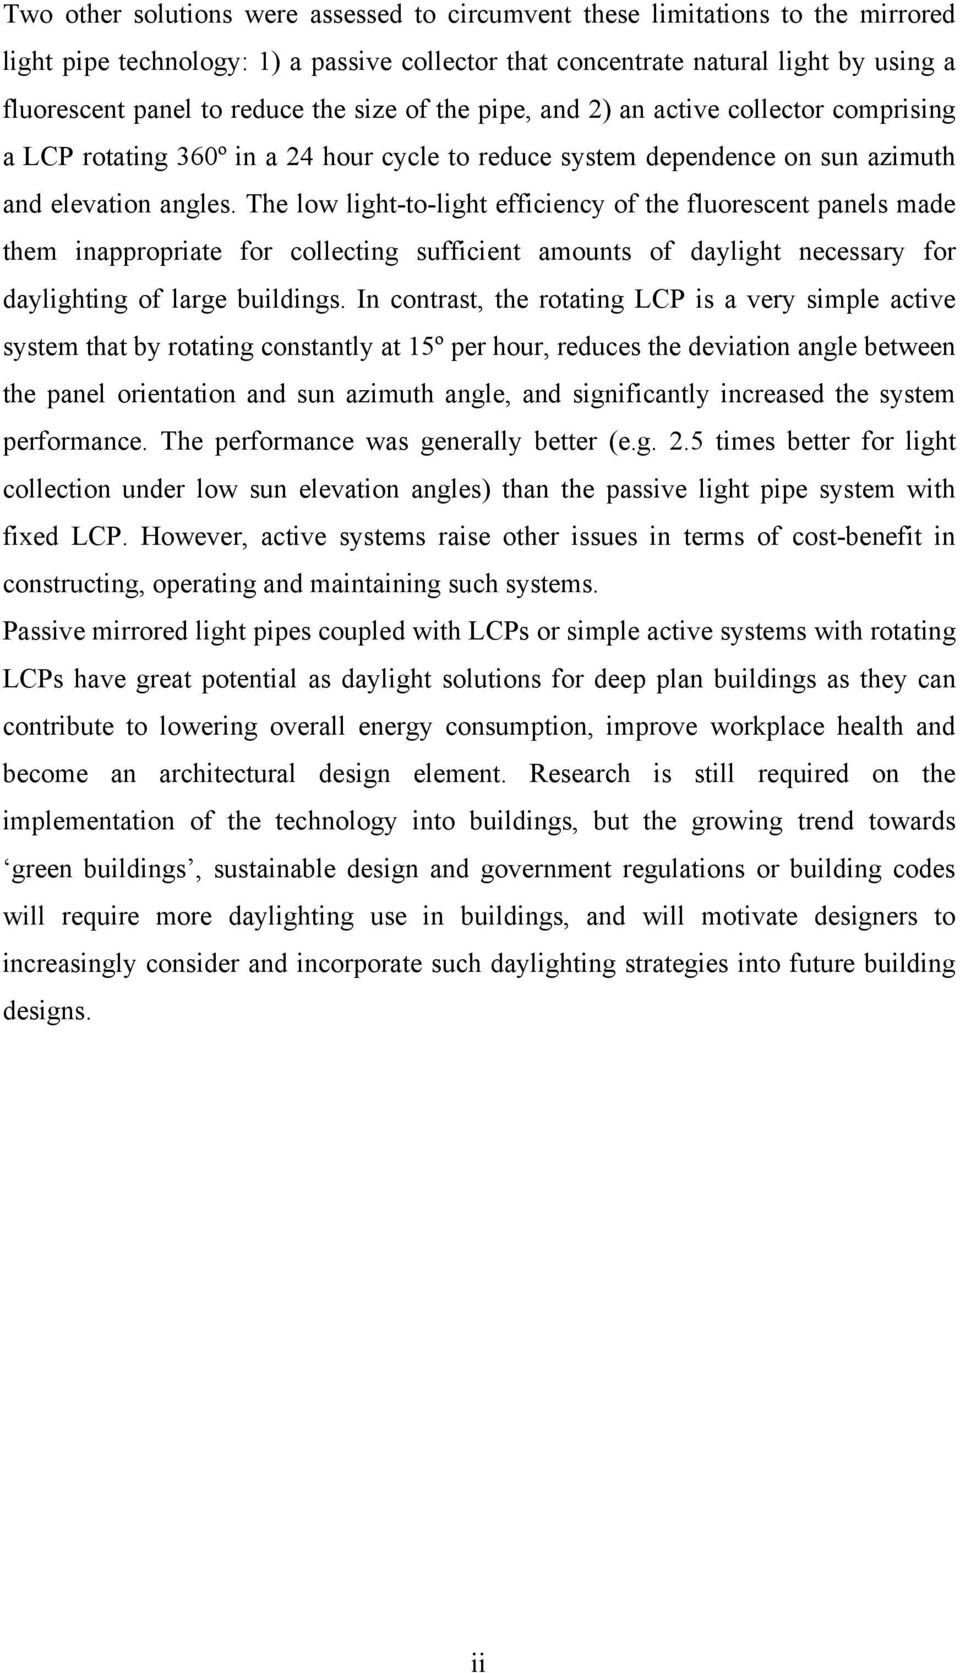 The low light-to-light efficiency of the fluorescent panels made them inappropriate for collecting sufficient amounts of daylight necessary for daylighting of large buildings.